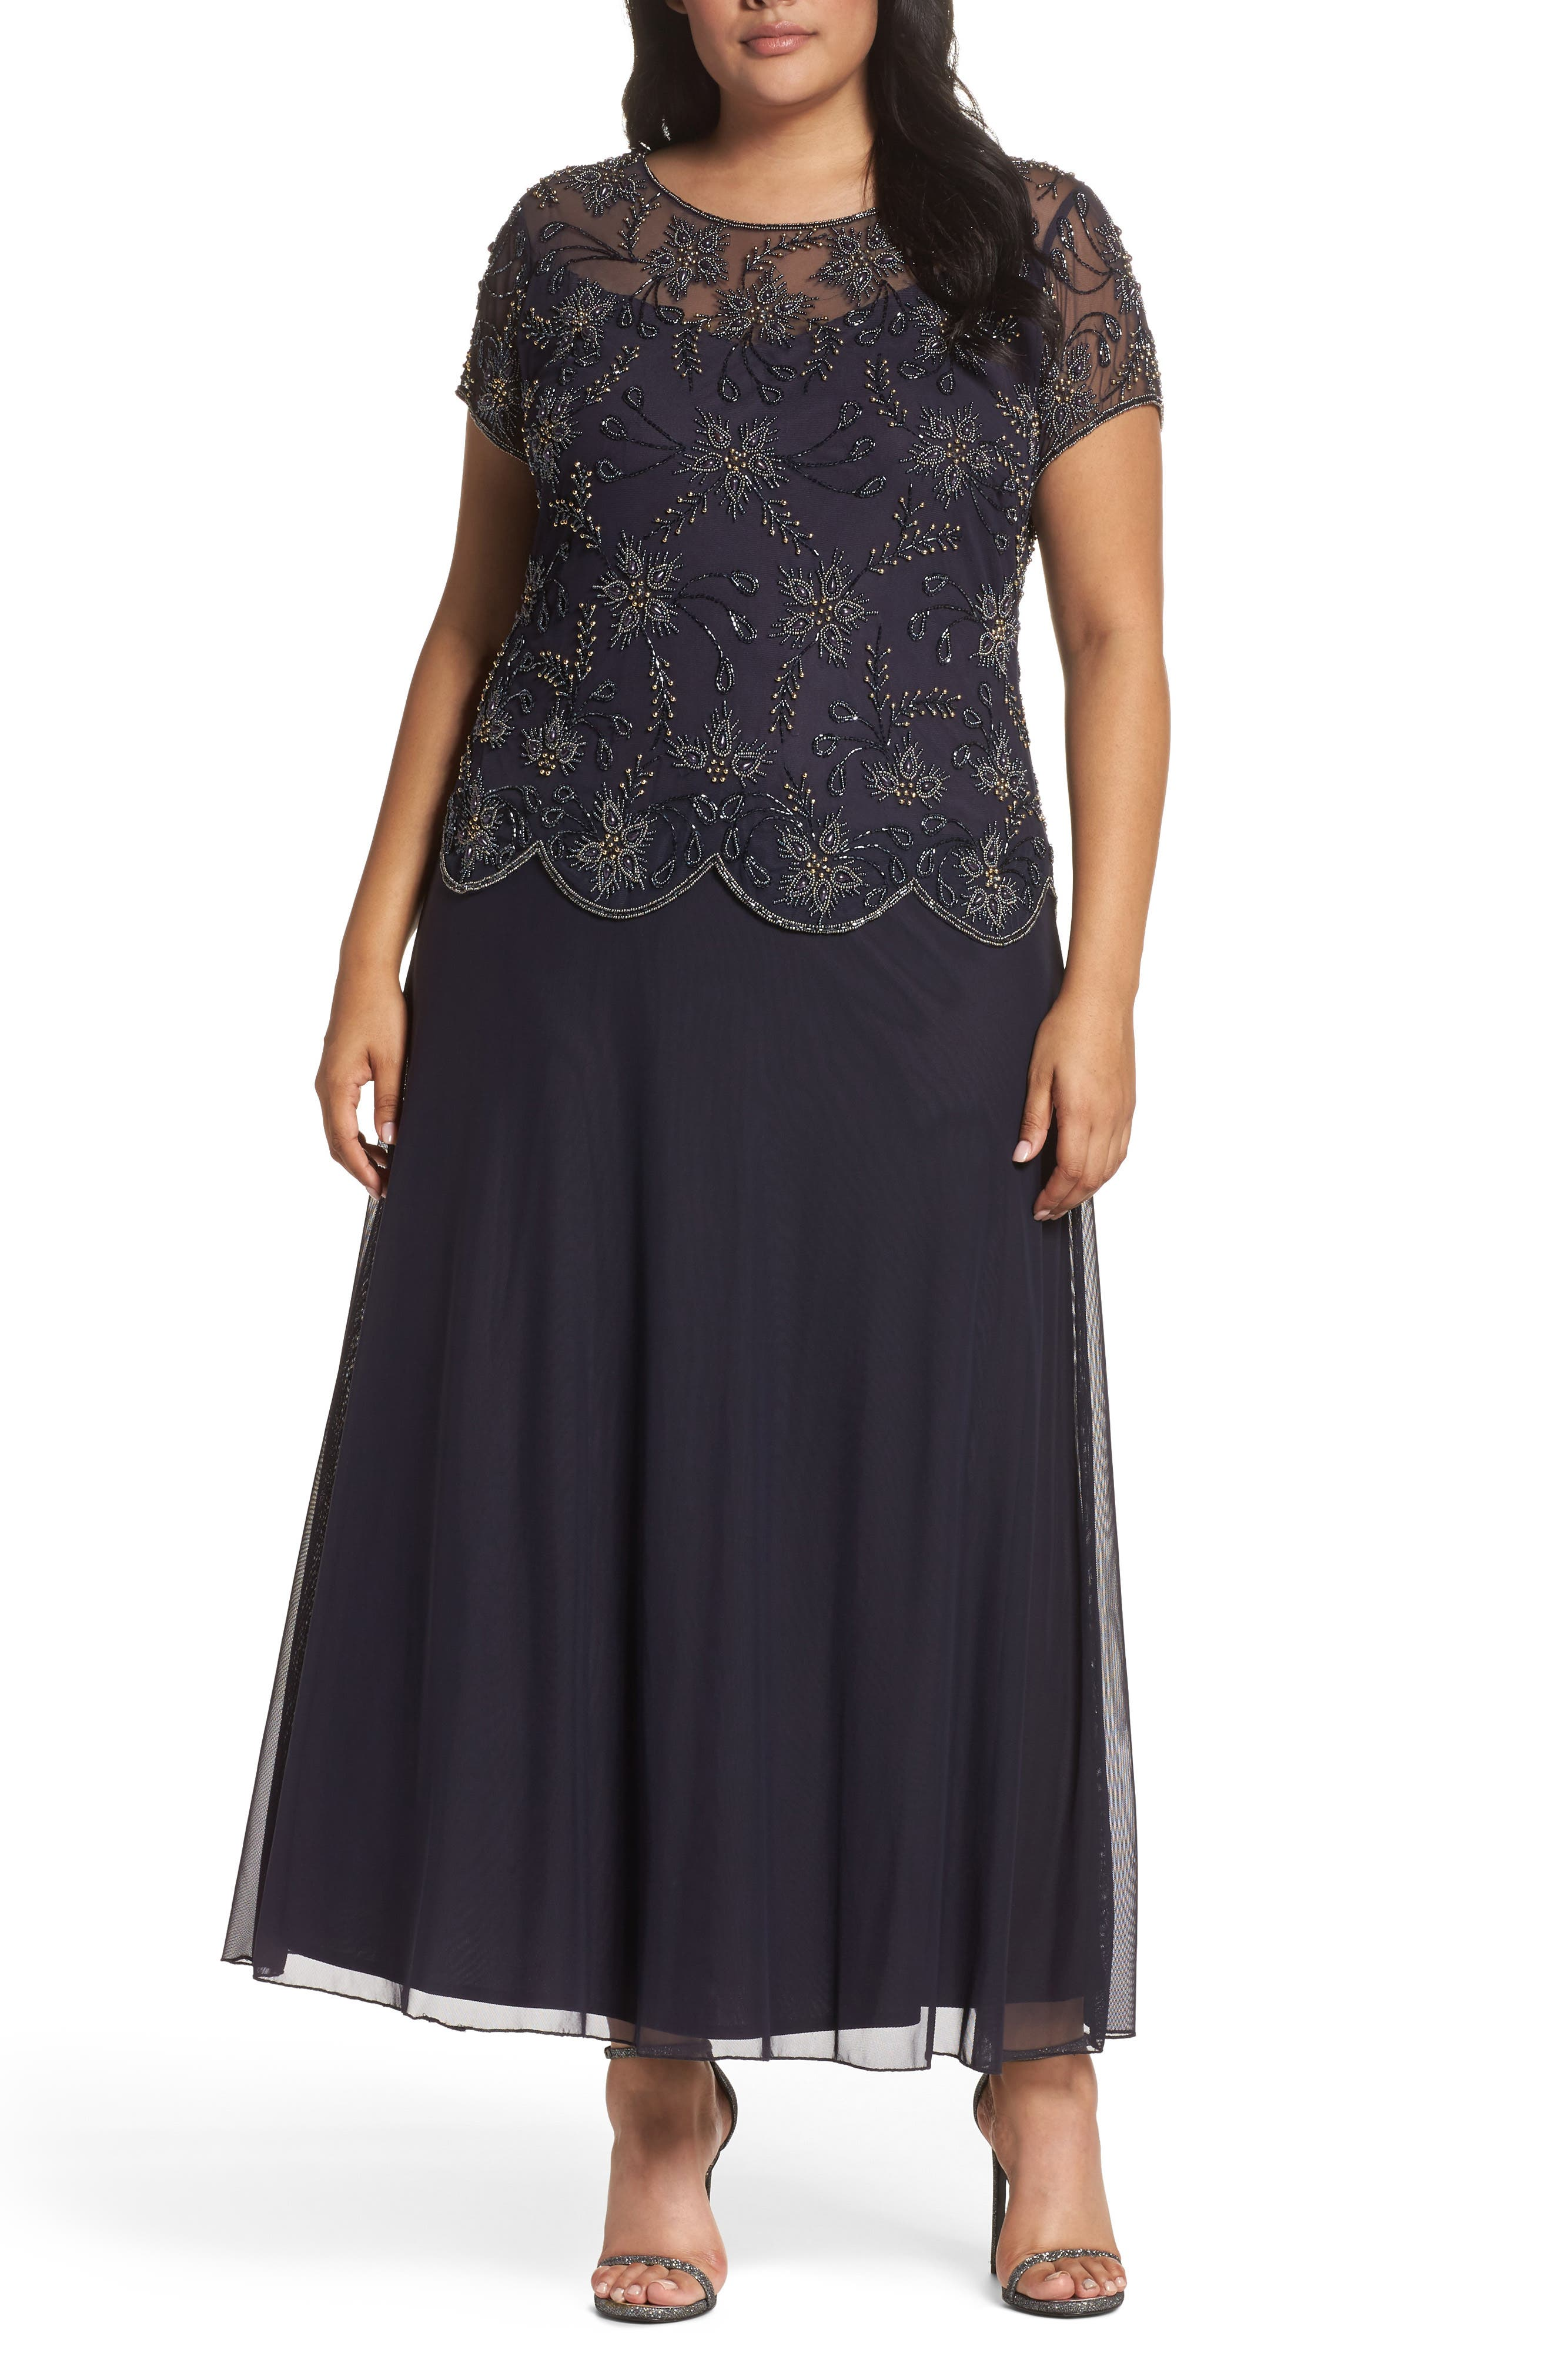 Main Image - Pisarro Nights Embellished Mock Two-Piece Maxi Dress (Plus Size)